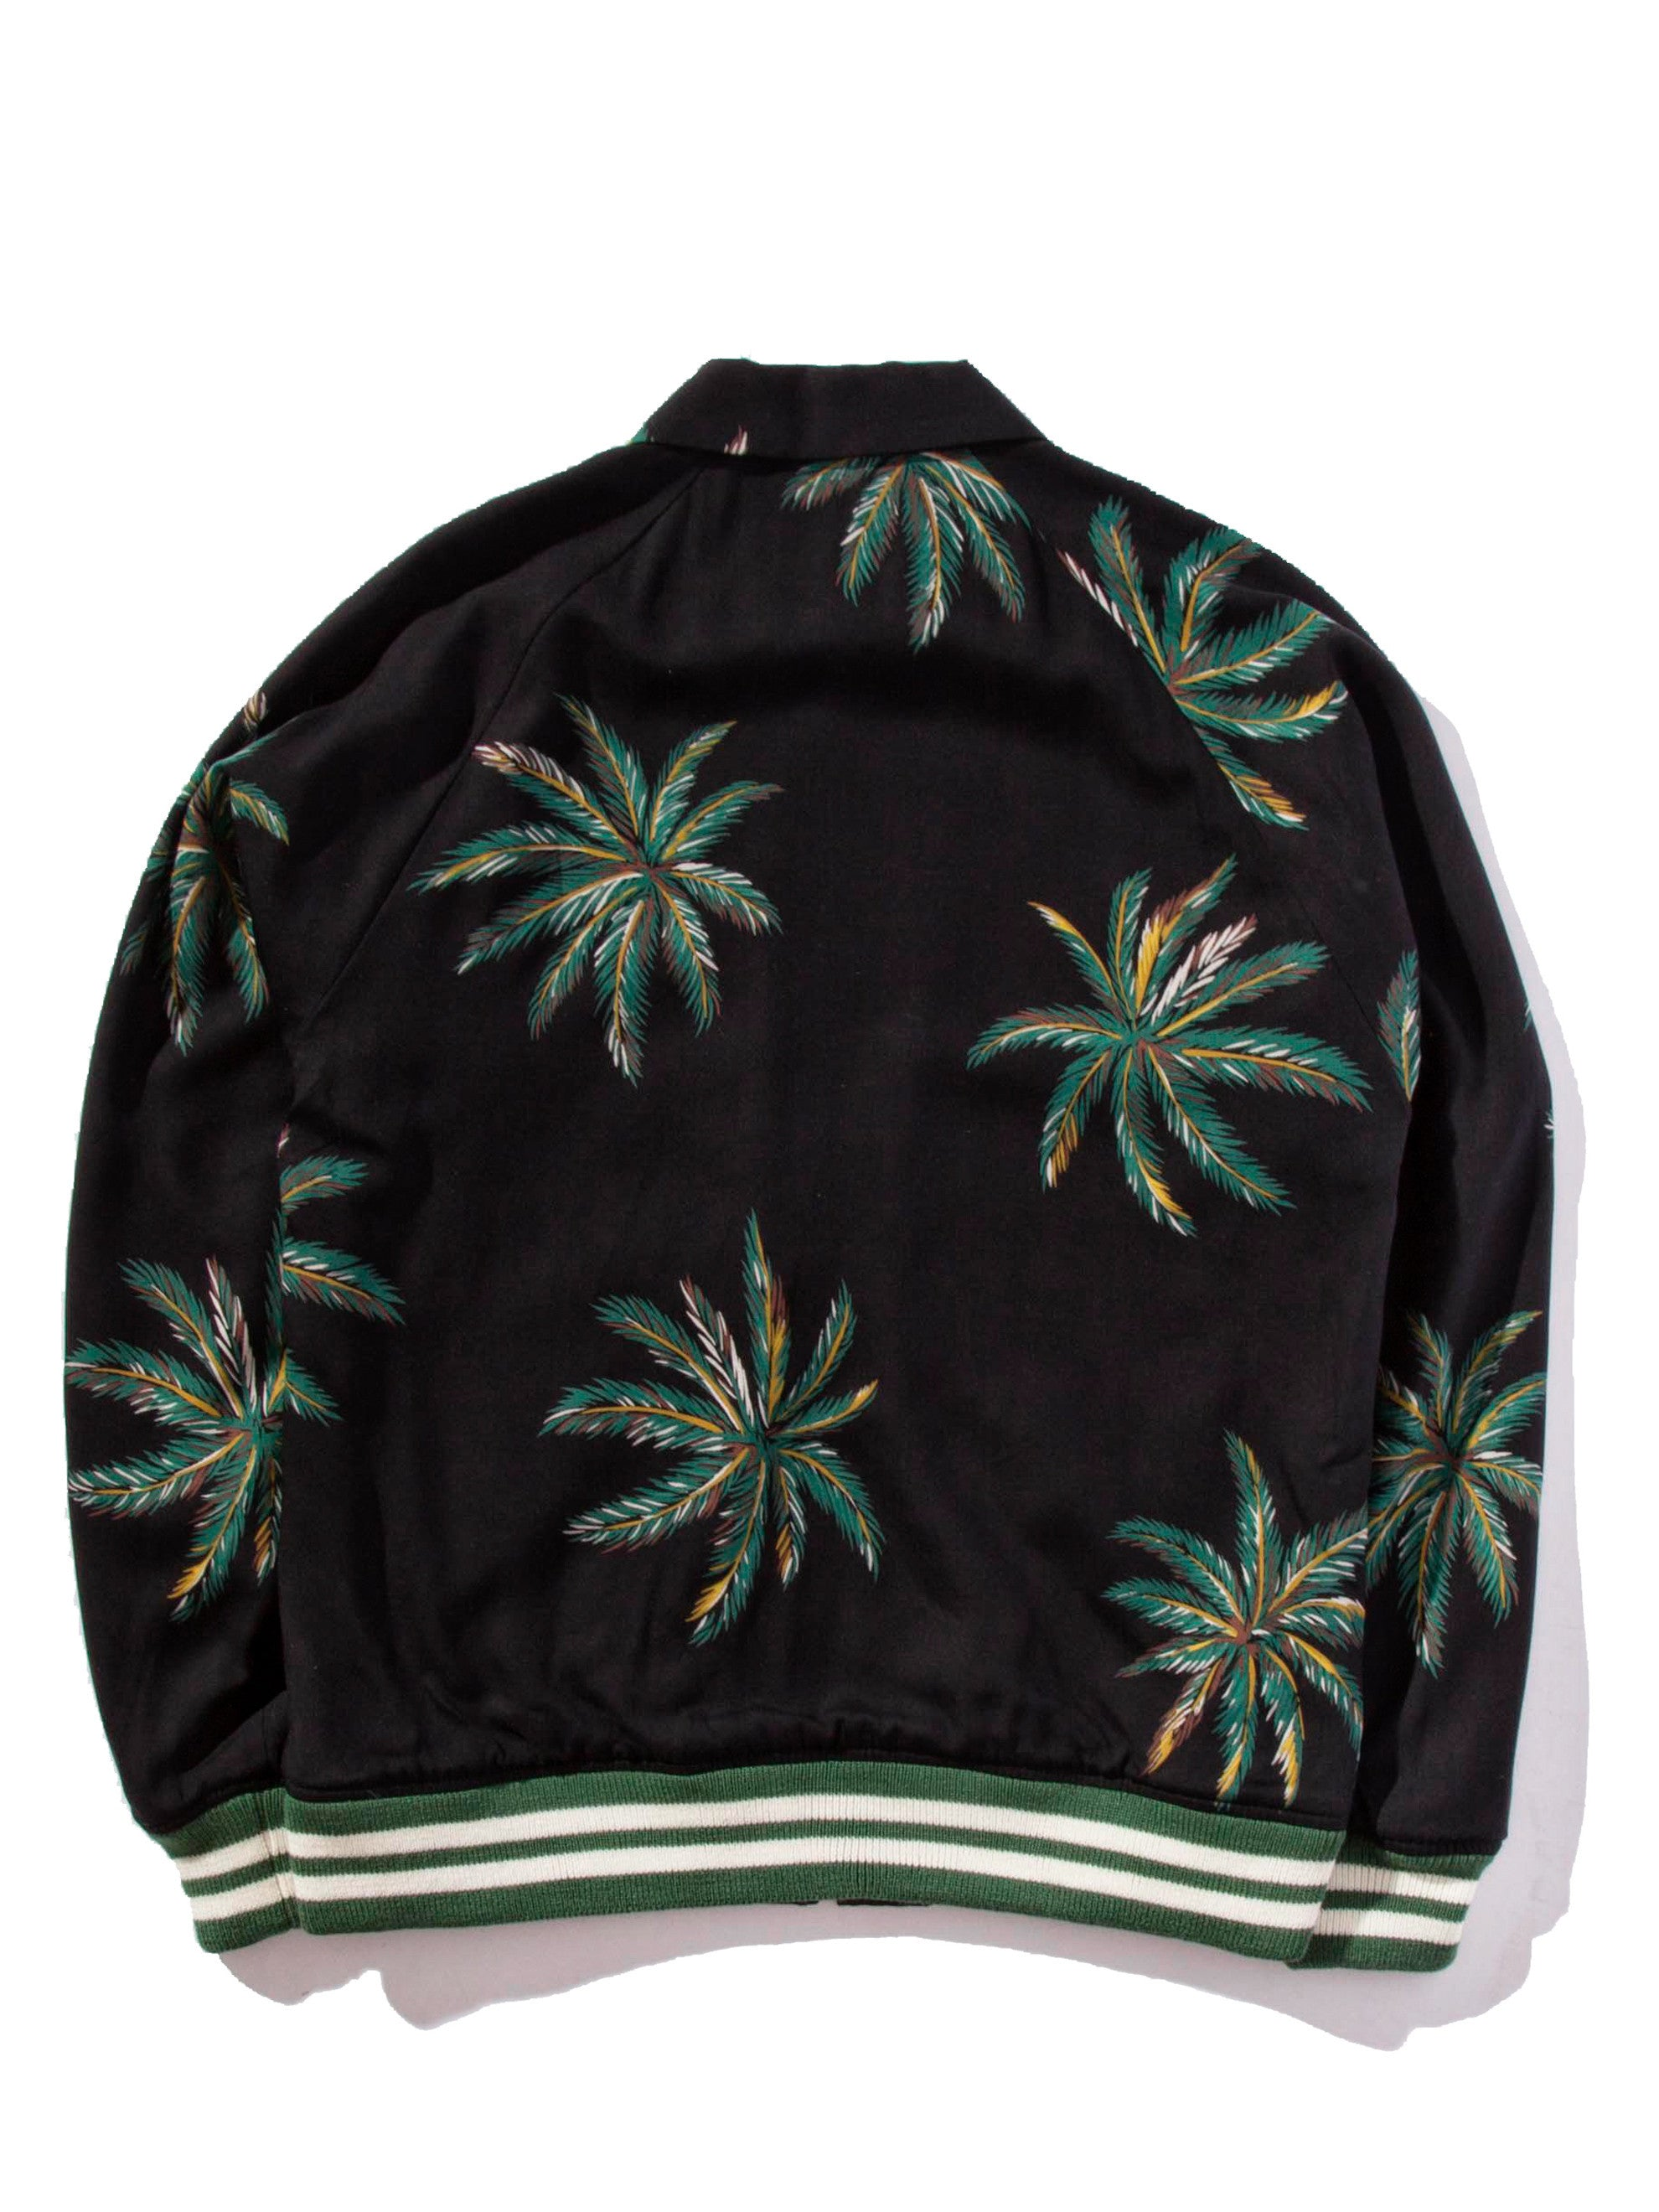 Black Sports Jacket (Palms) 7